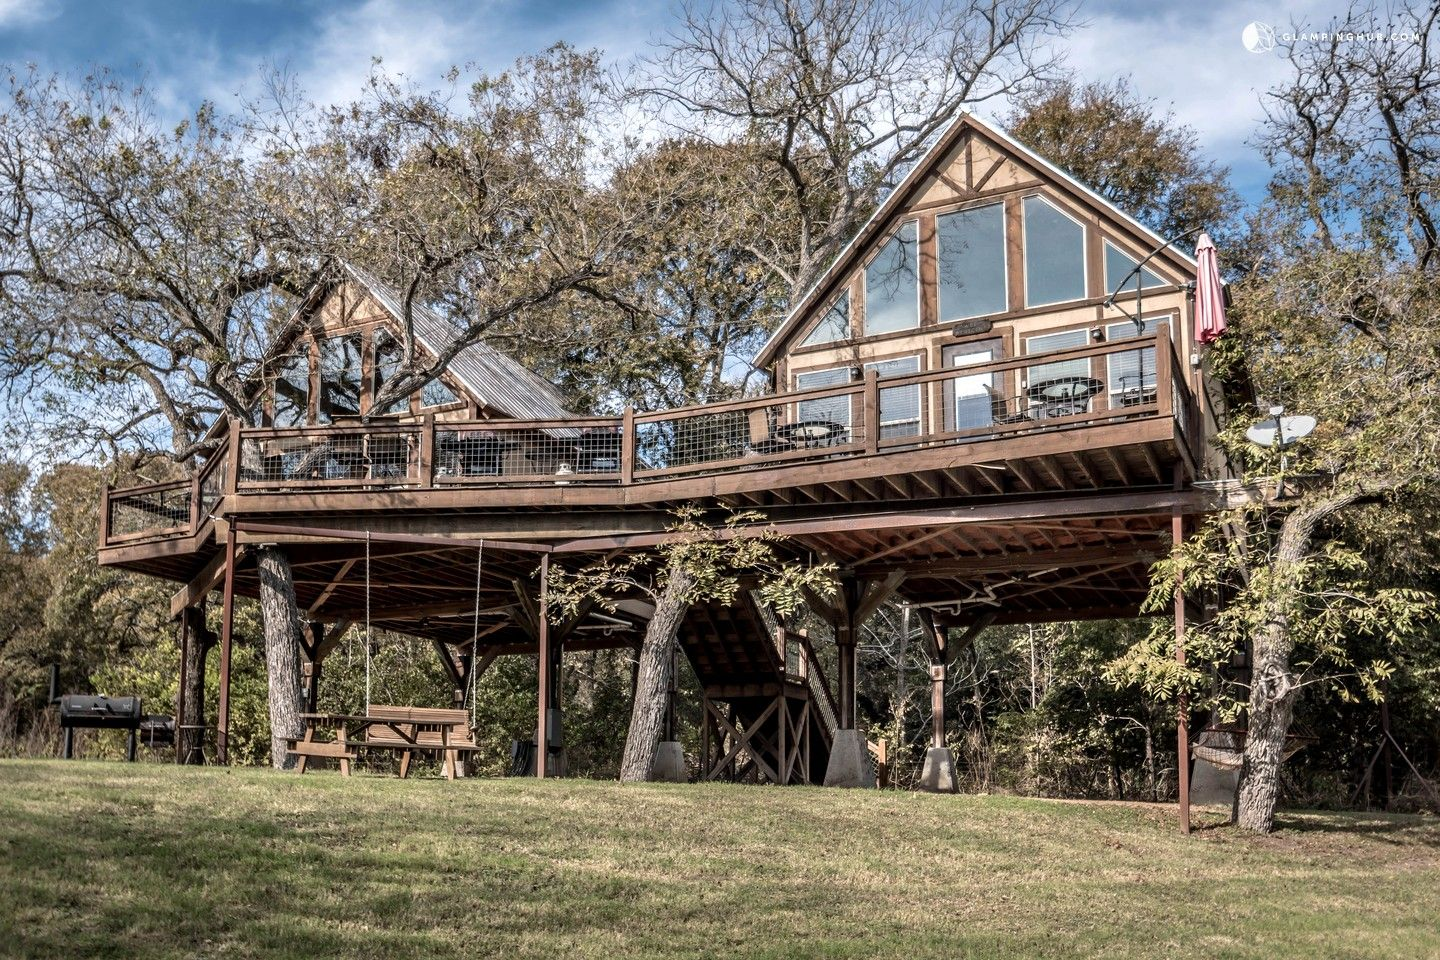 Superieur Creekside Tree House Rentals In New Braunfels, Texas